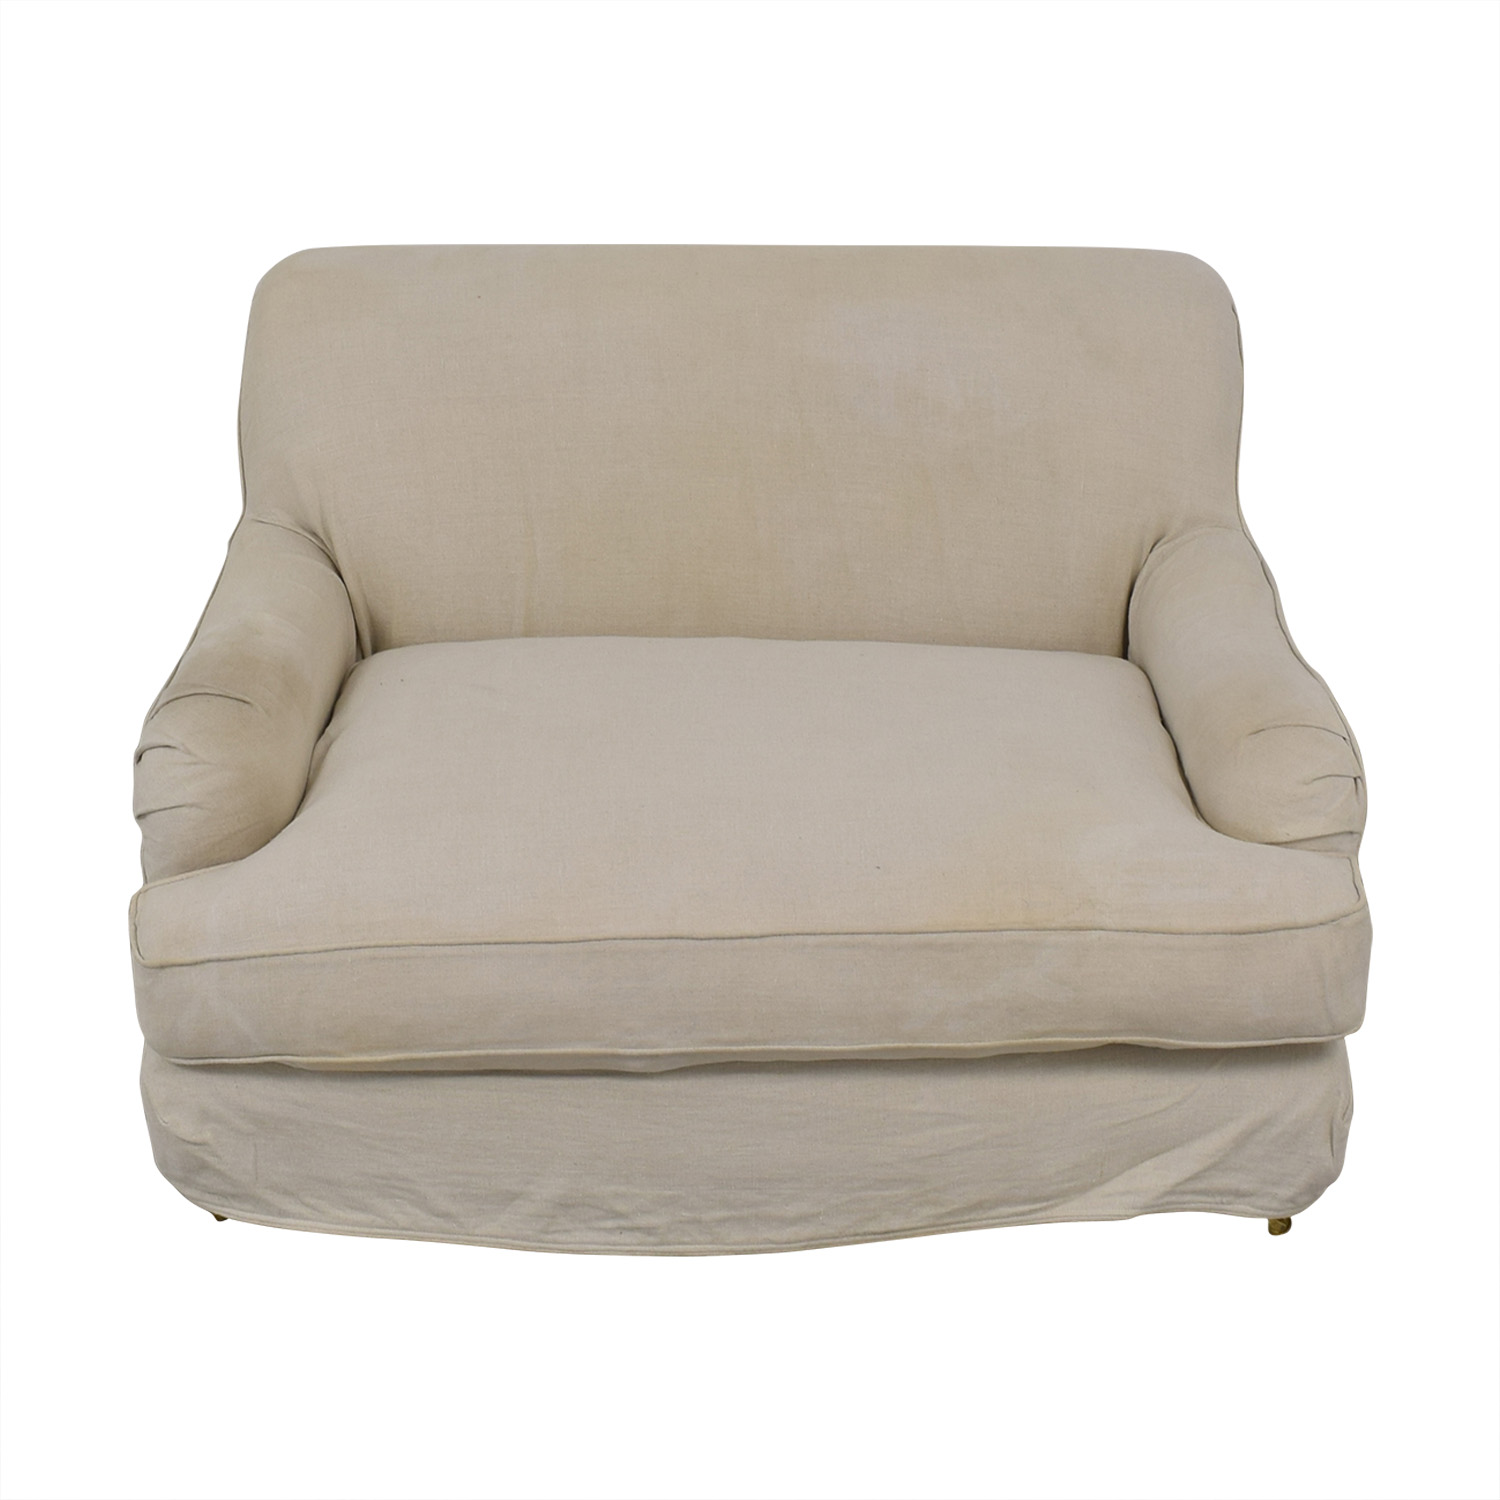 Rachel Ashwell Shabby Chic Rachel Ashwell Shabby Chic Chair and Half